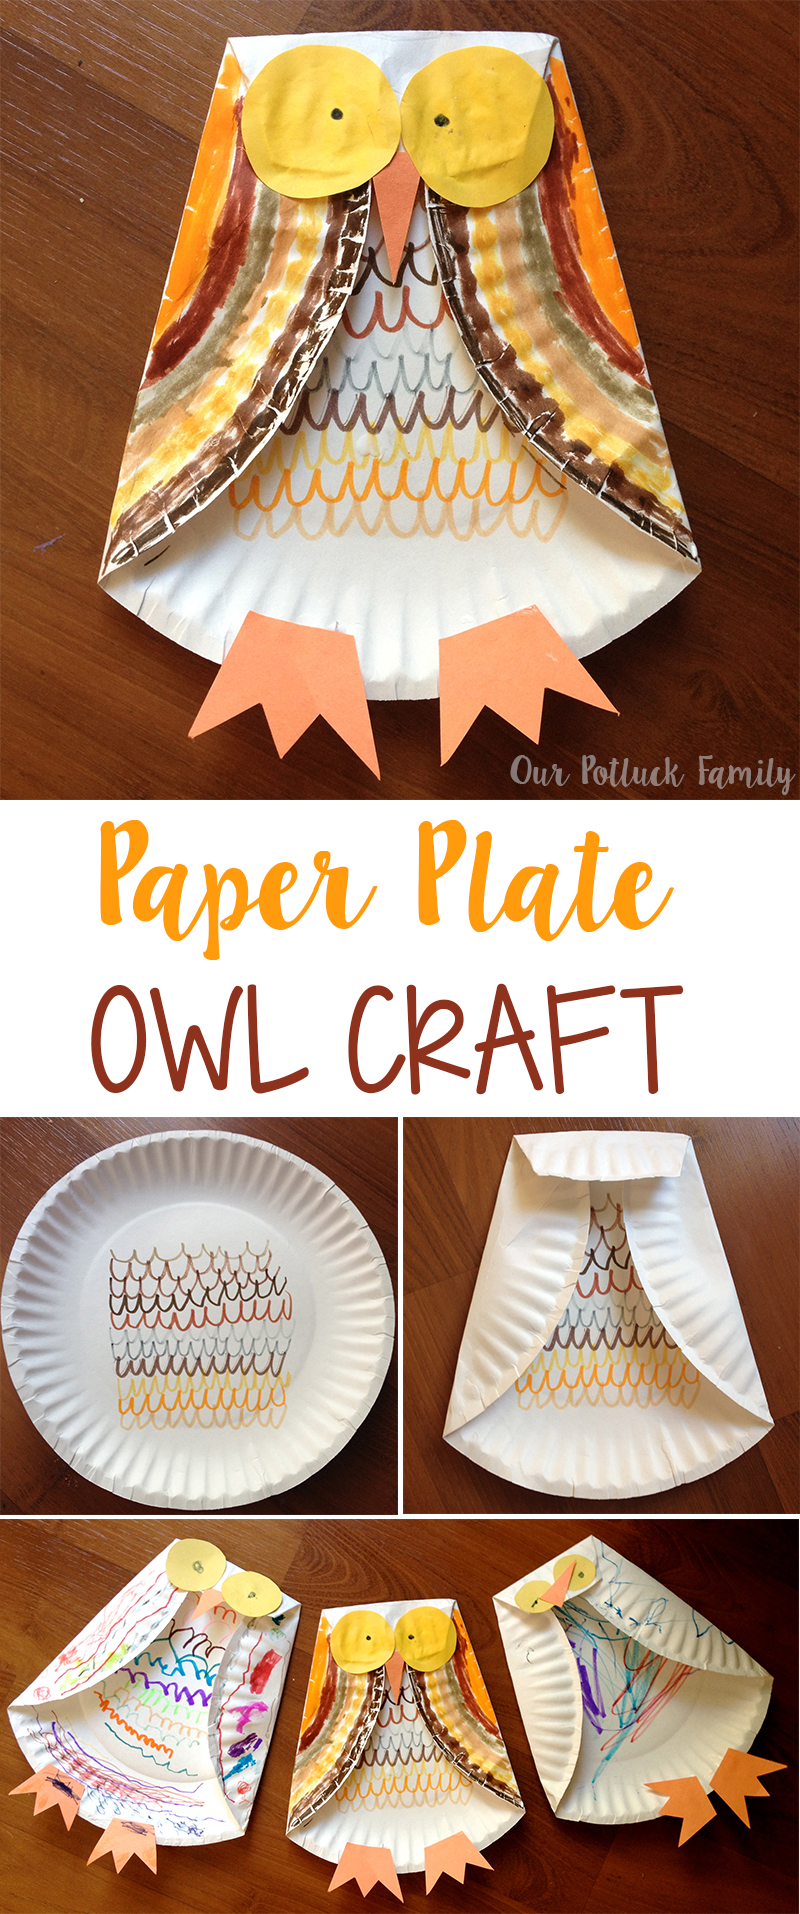 Easy Paper Plate Owl Craft